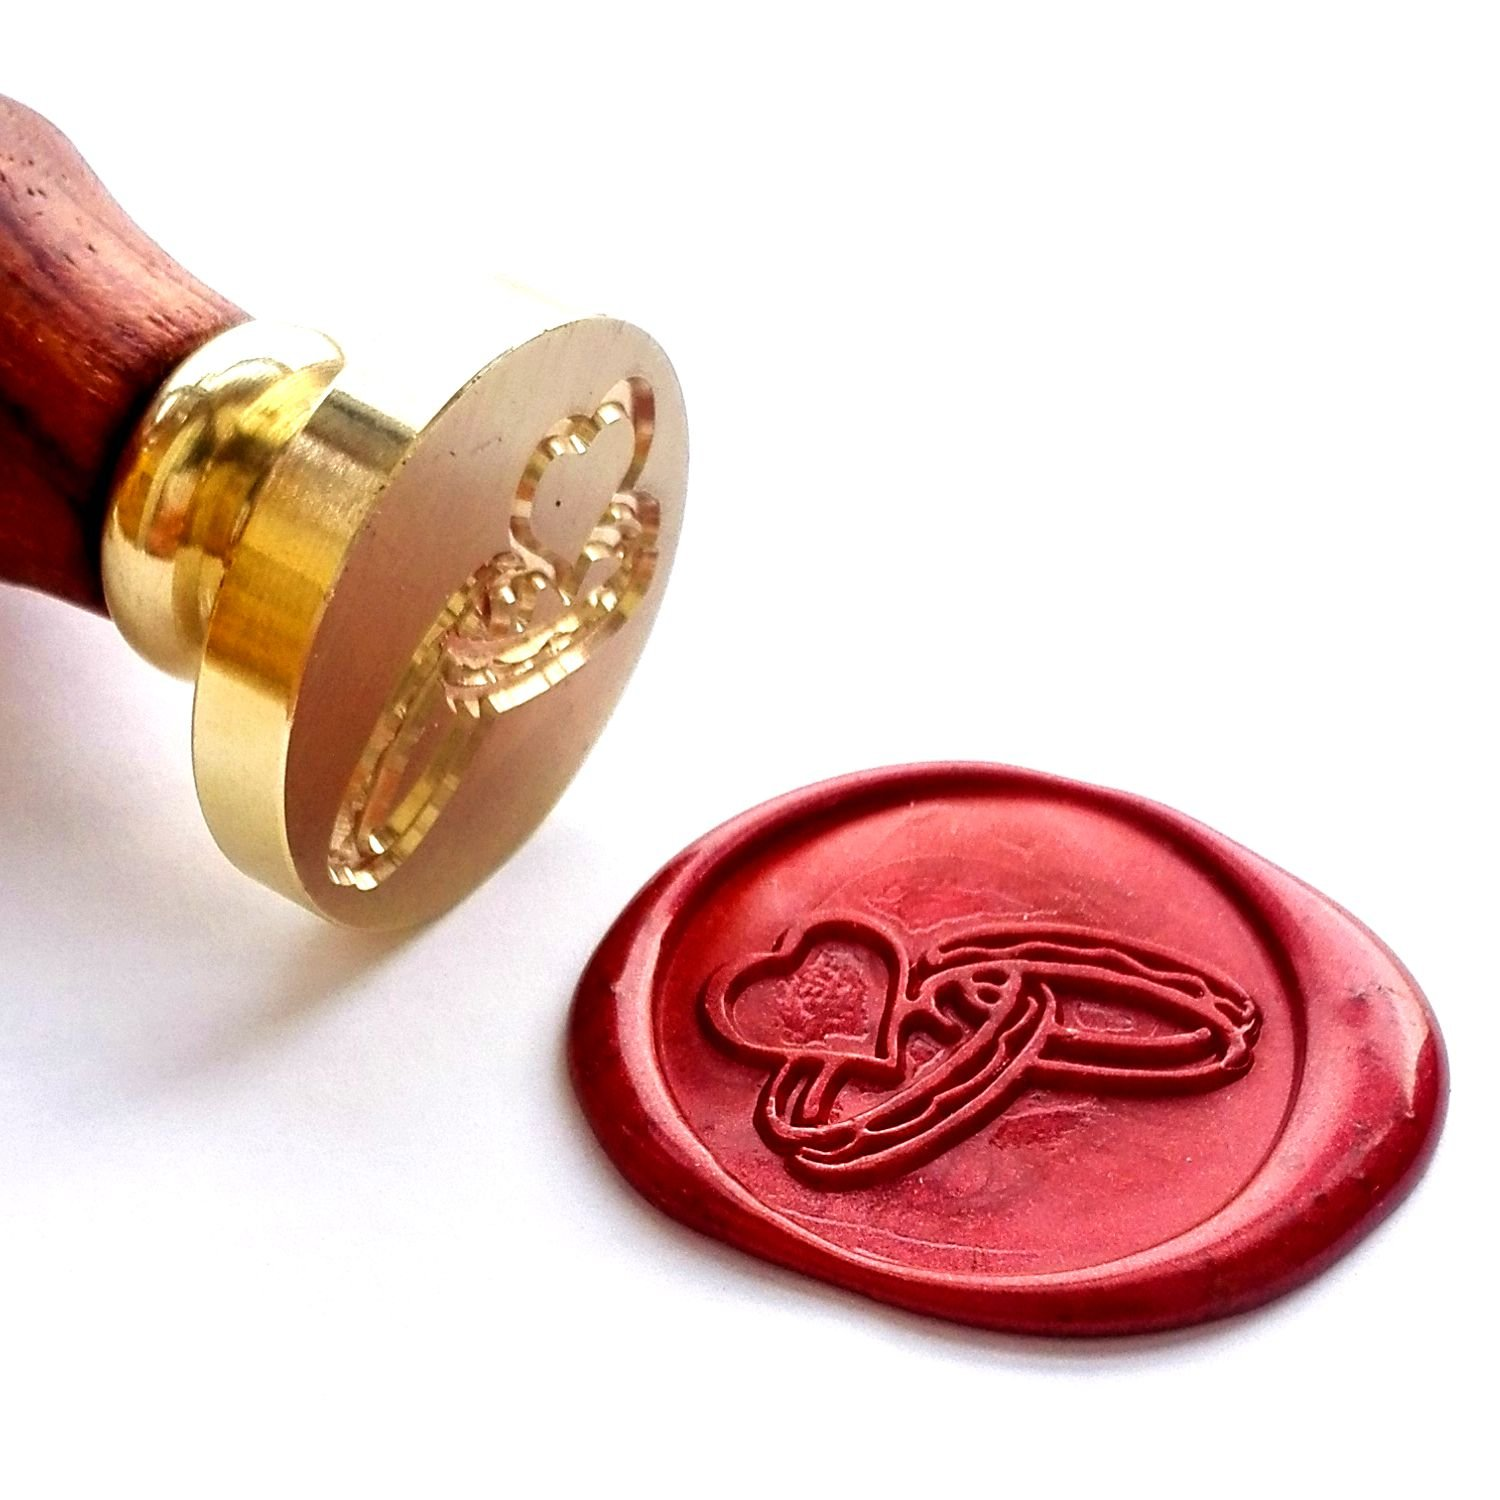 VOOSEYHOME the Hearts & Rings Wax Seal Stamp with Rosewood Handle - Ideal for Decorating Gift Packing, Envelopes, Parcels, Parties, Weddings, Invitations, Cards, Signature and Everything You Like! JJEDWARD 4336845724